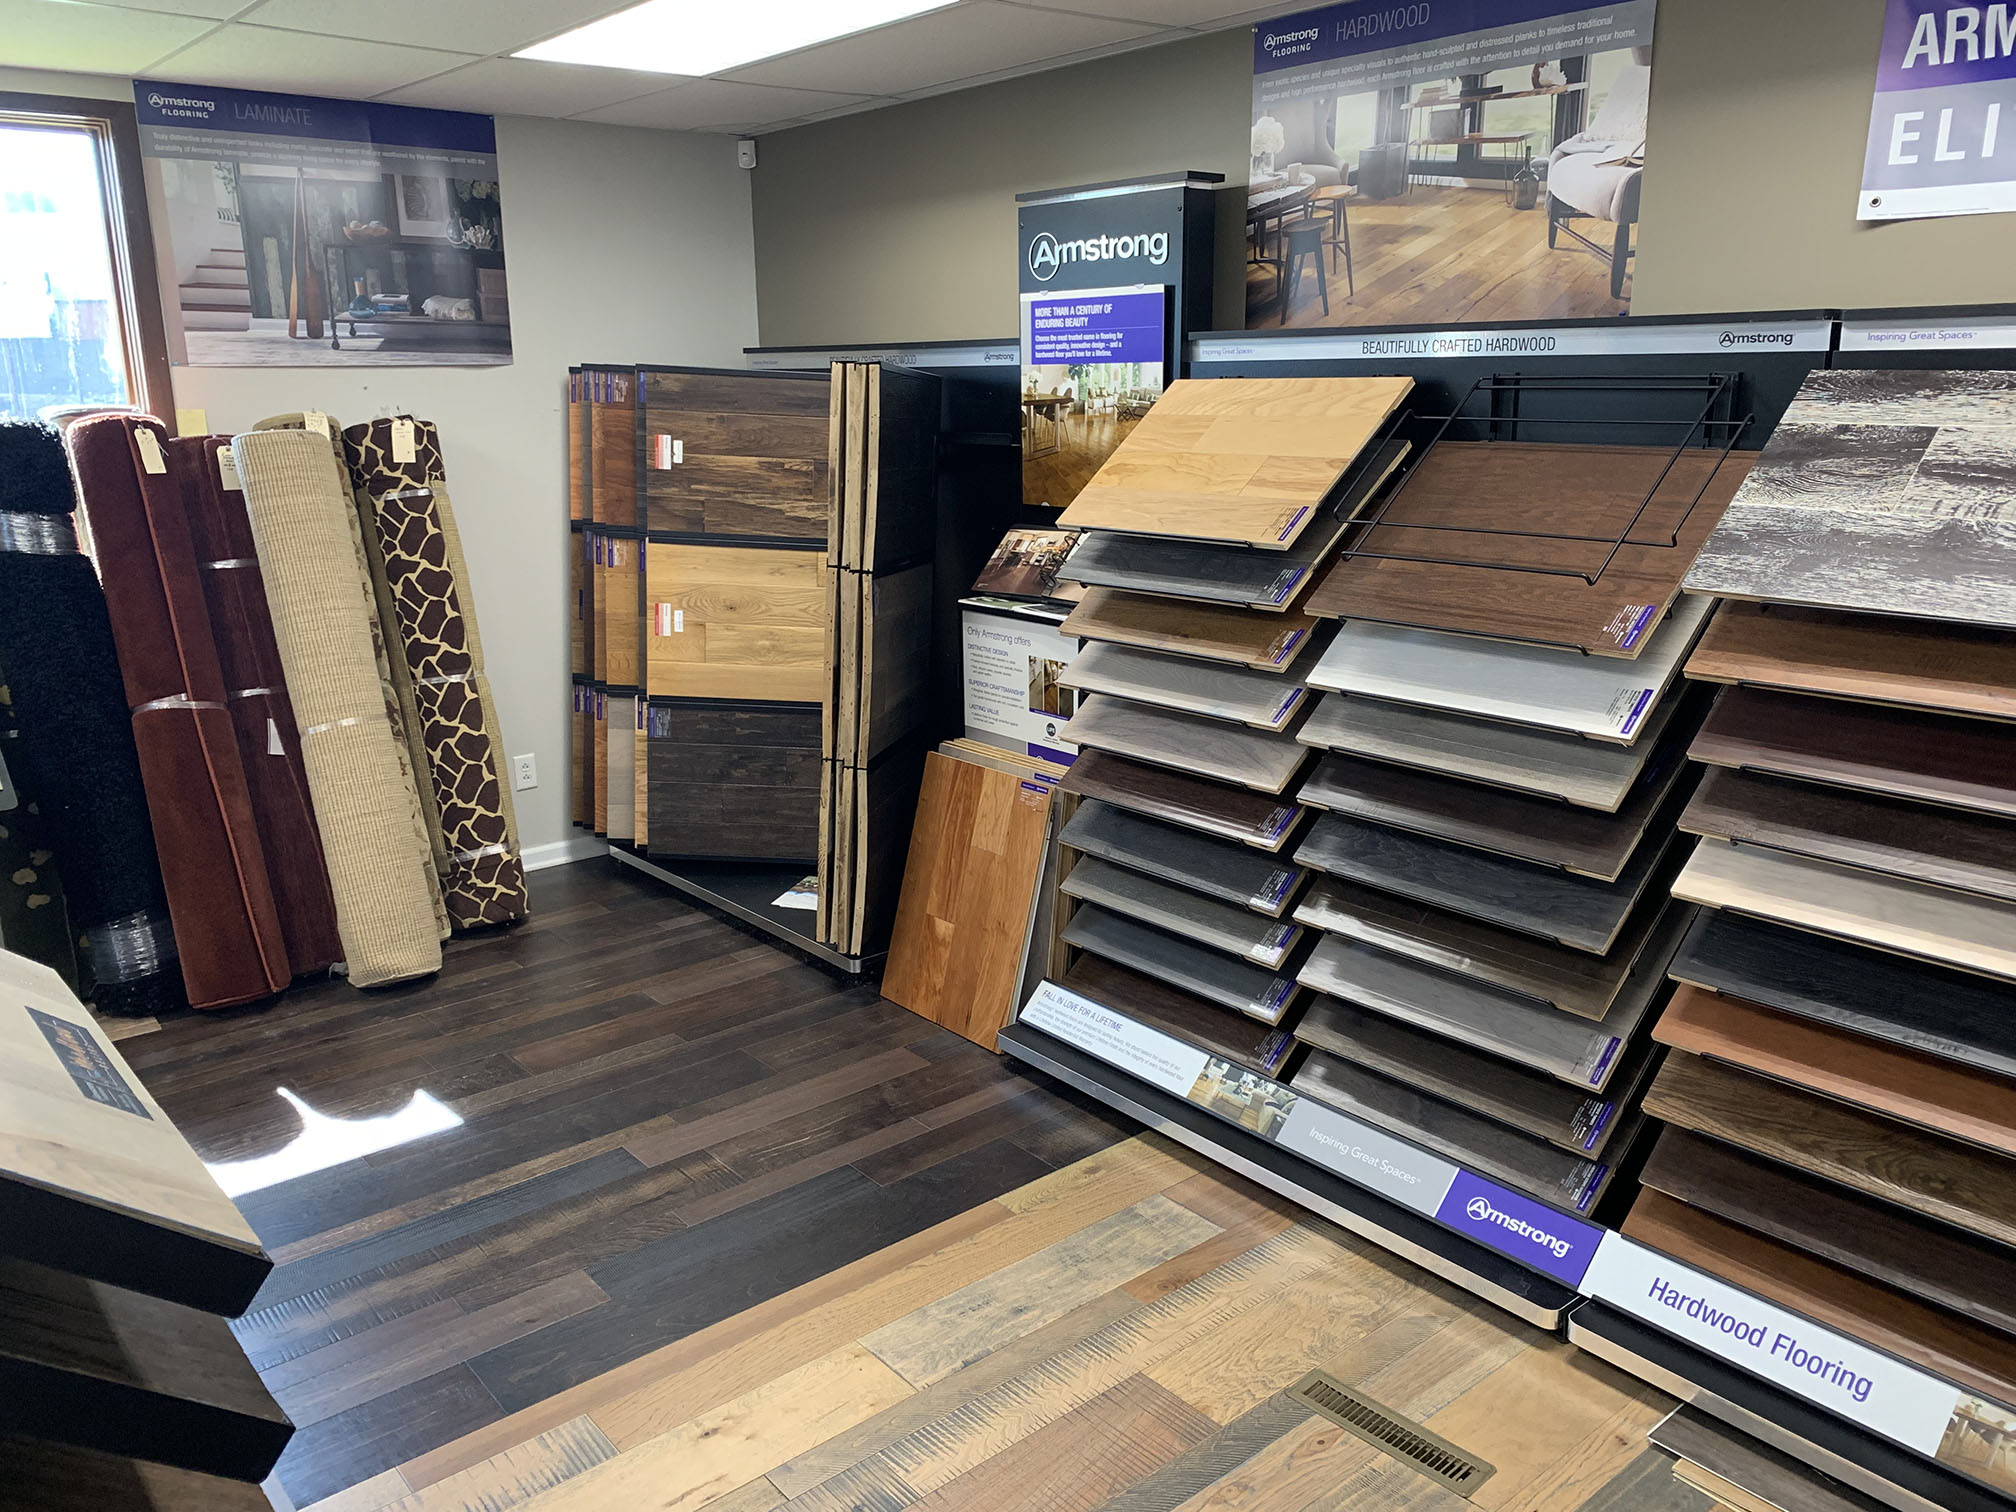 7 things to examine in a flooring store